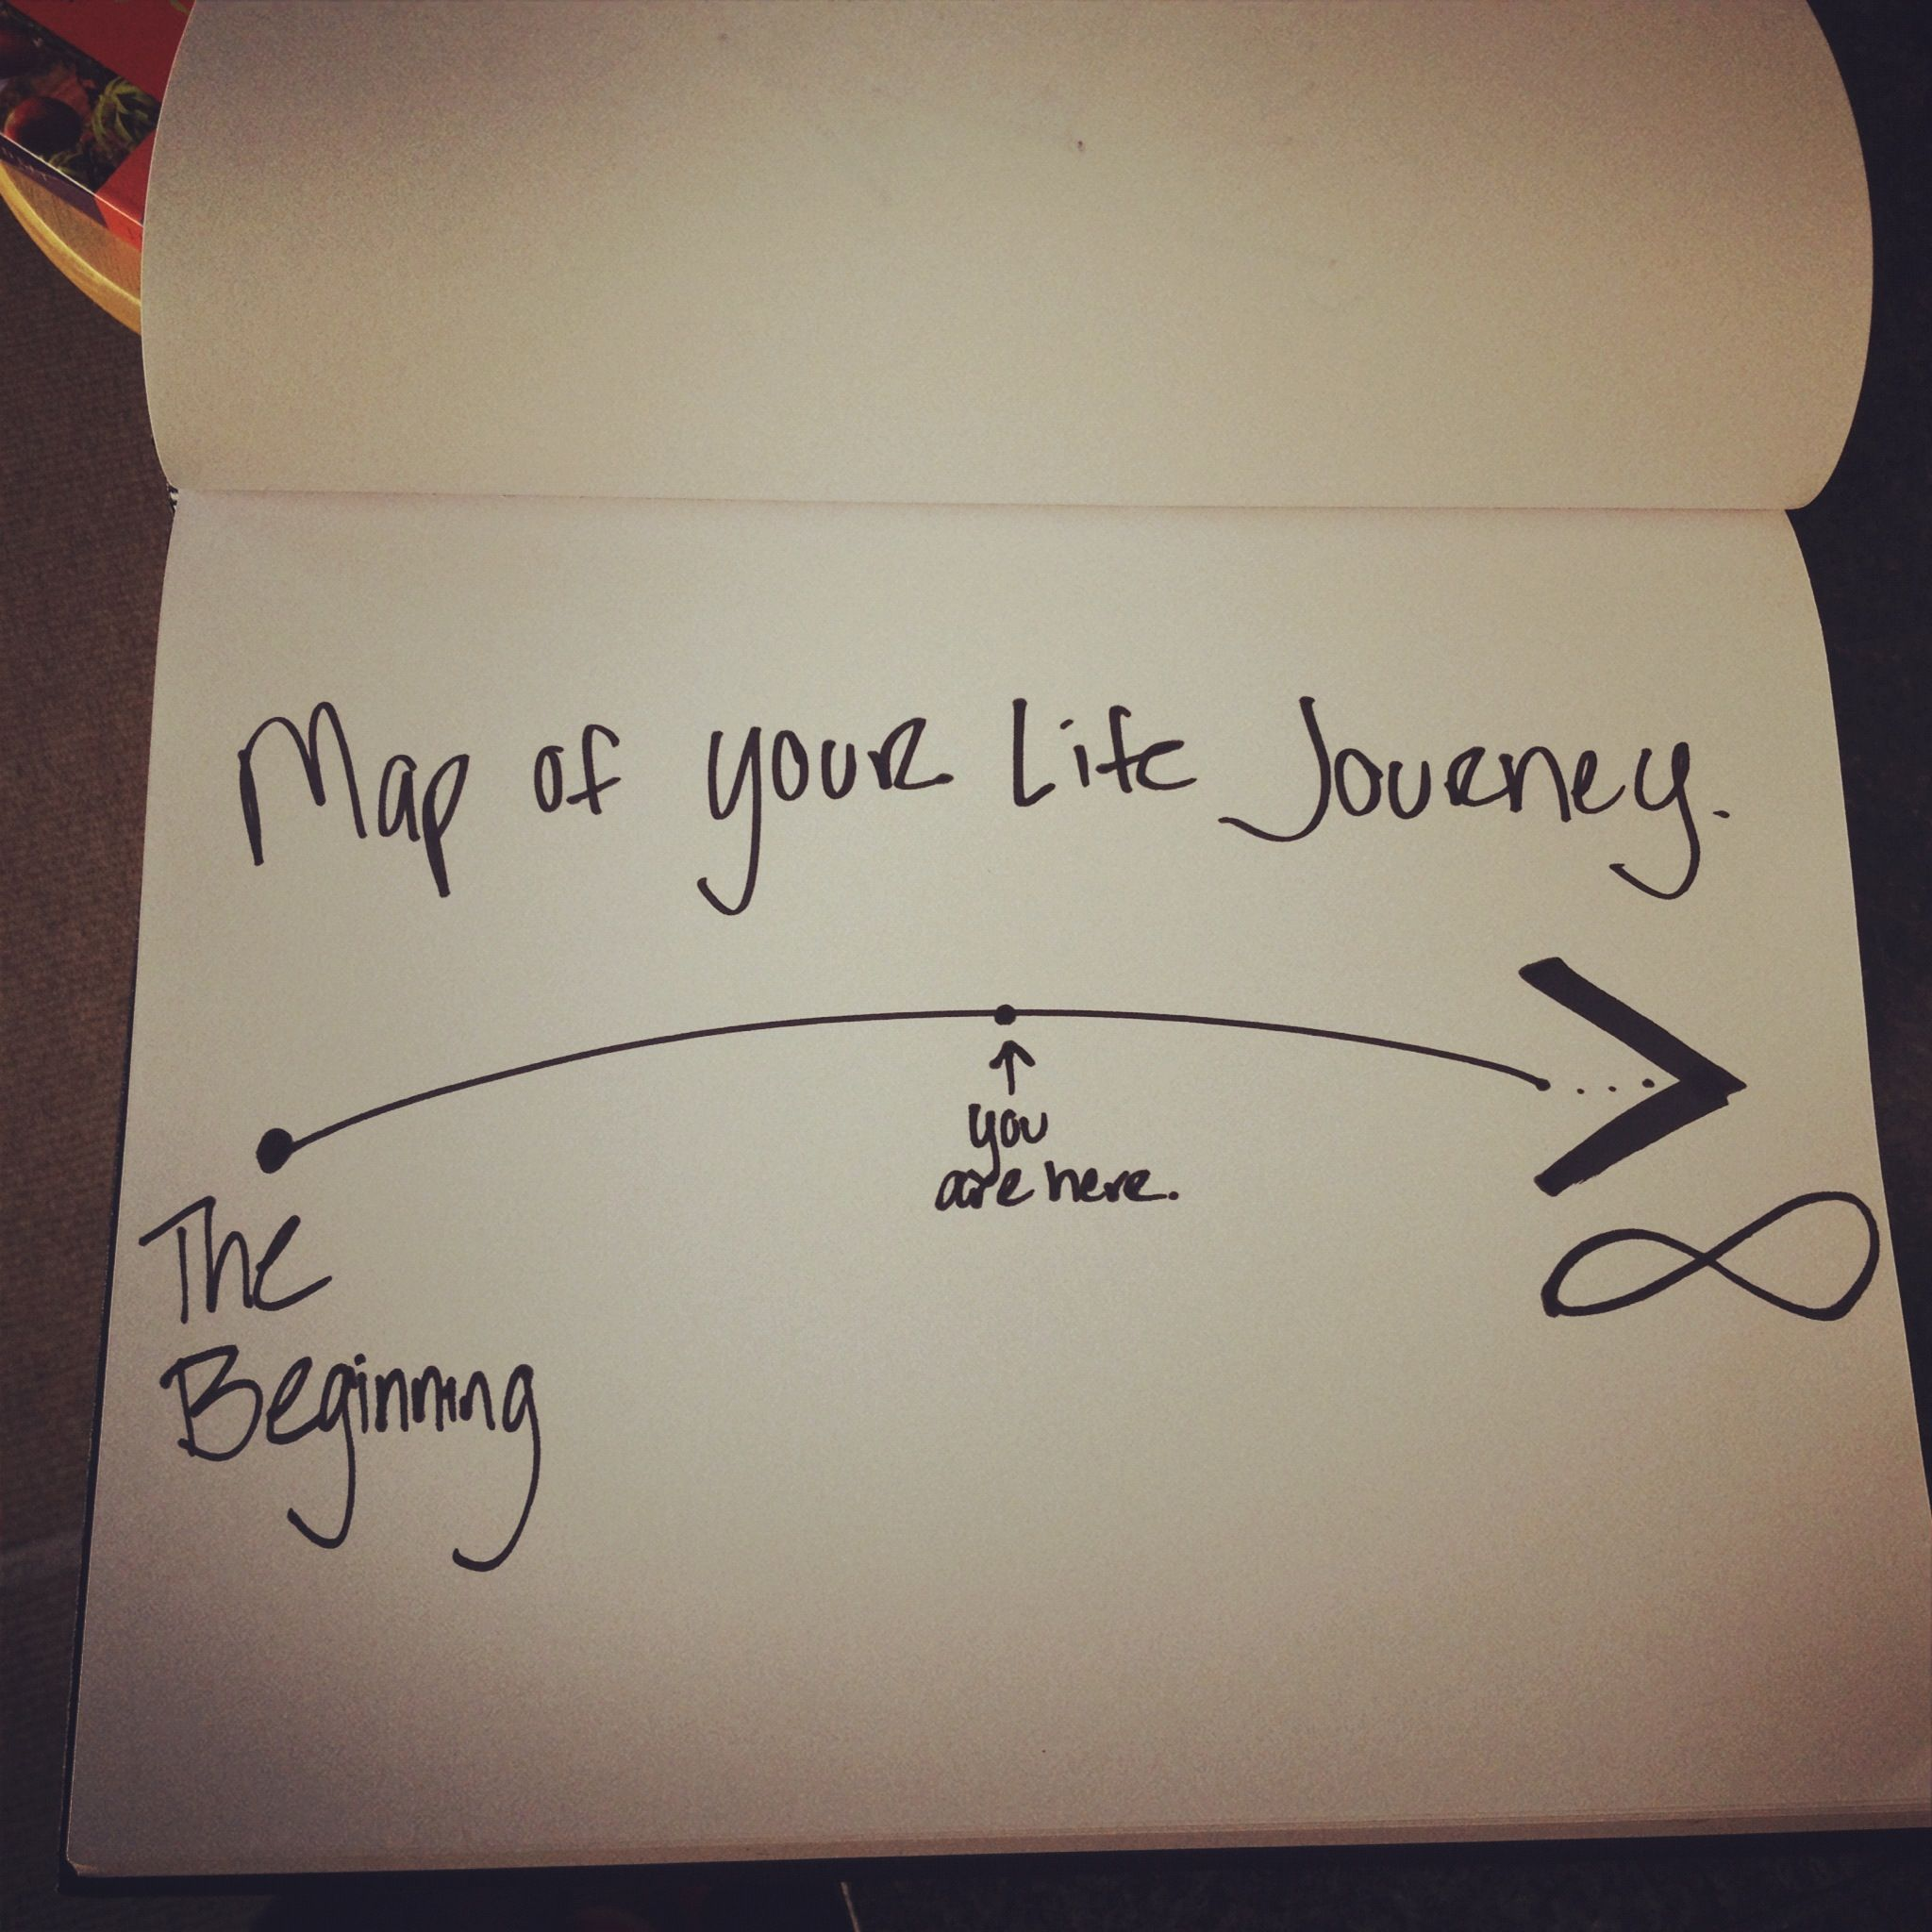 pictures of a life's journey | map of your life journey | Journey mapping,  Home decor decals, Inspiration